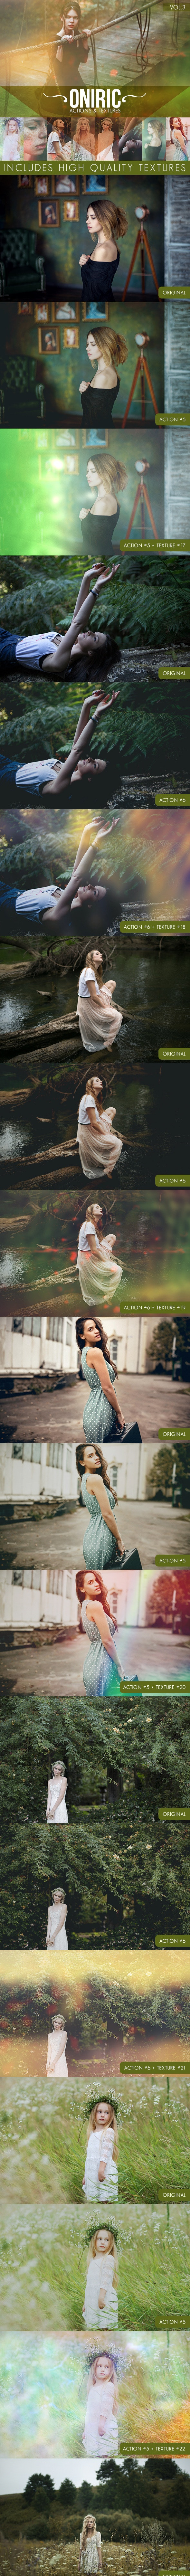 Oniric Actions and Textures Vol.3 - Photo Effects Actions